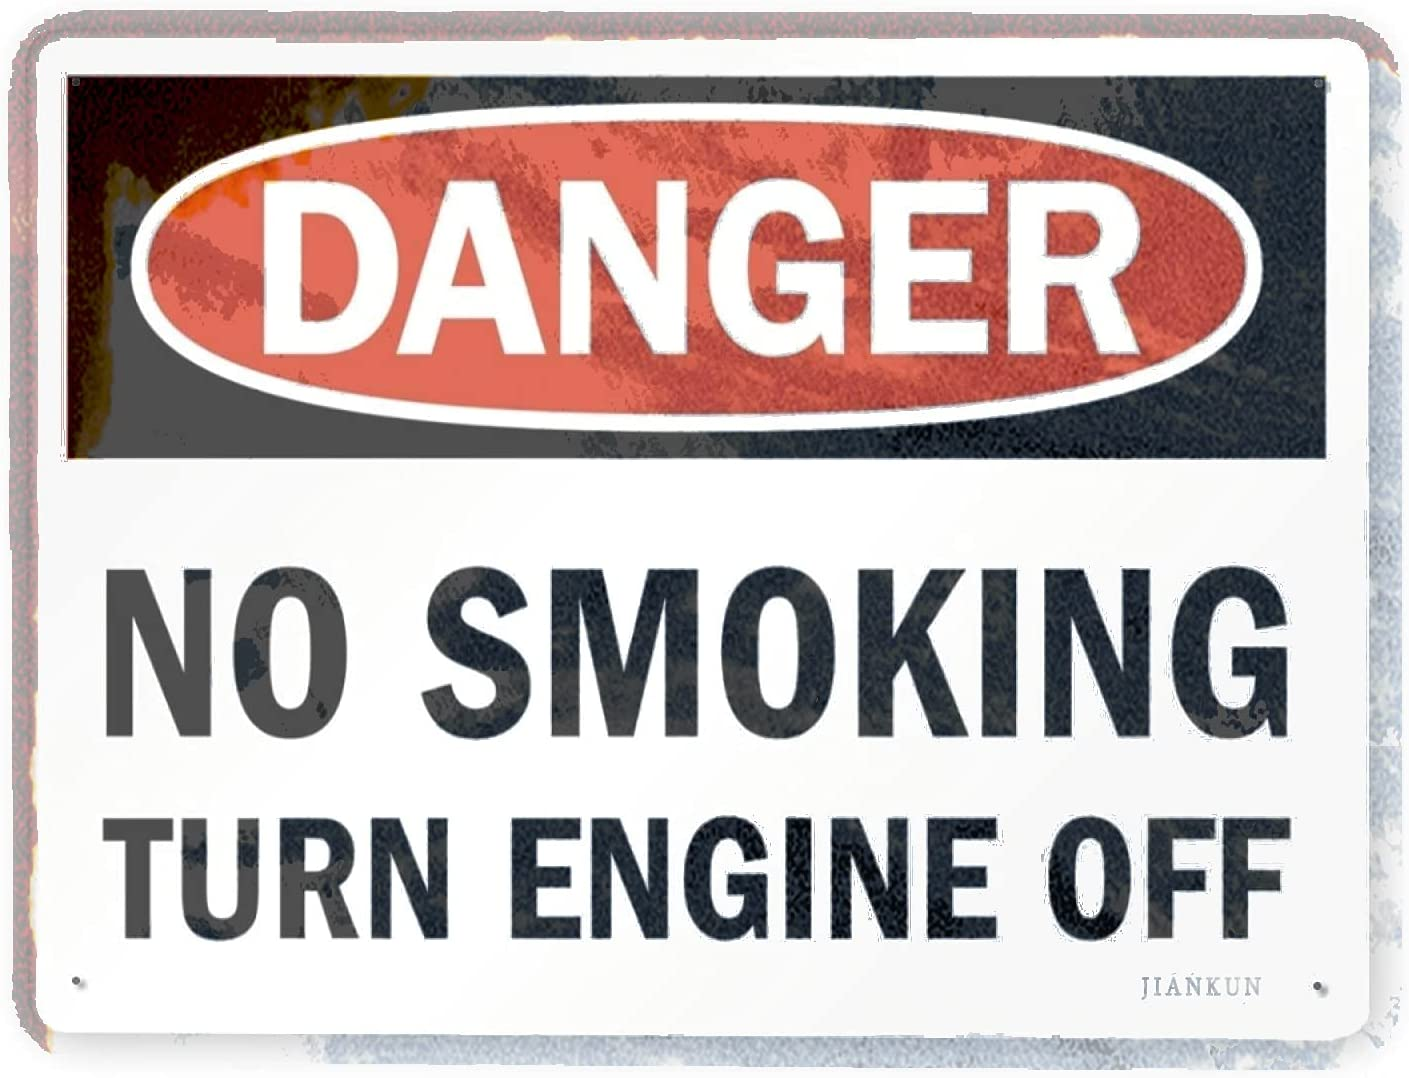 J.DXHYA Man Cave Lowest price challenge Decor 2 Pieces Sign Warning Same day shipping Danger Smok No